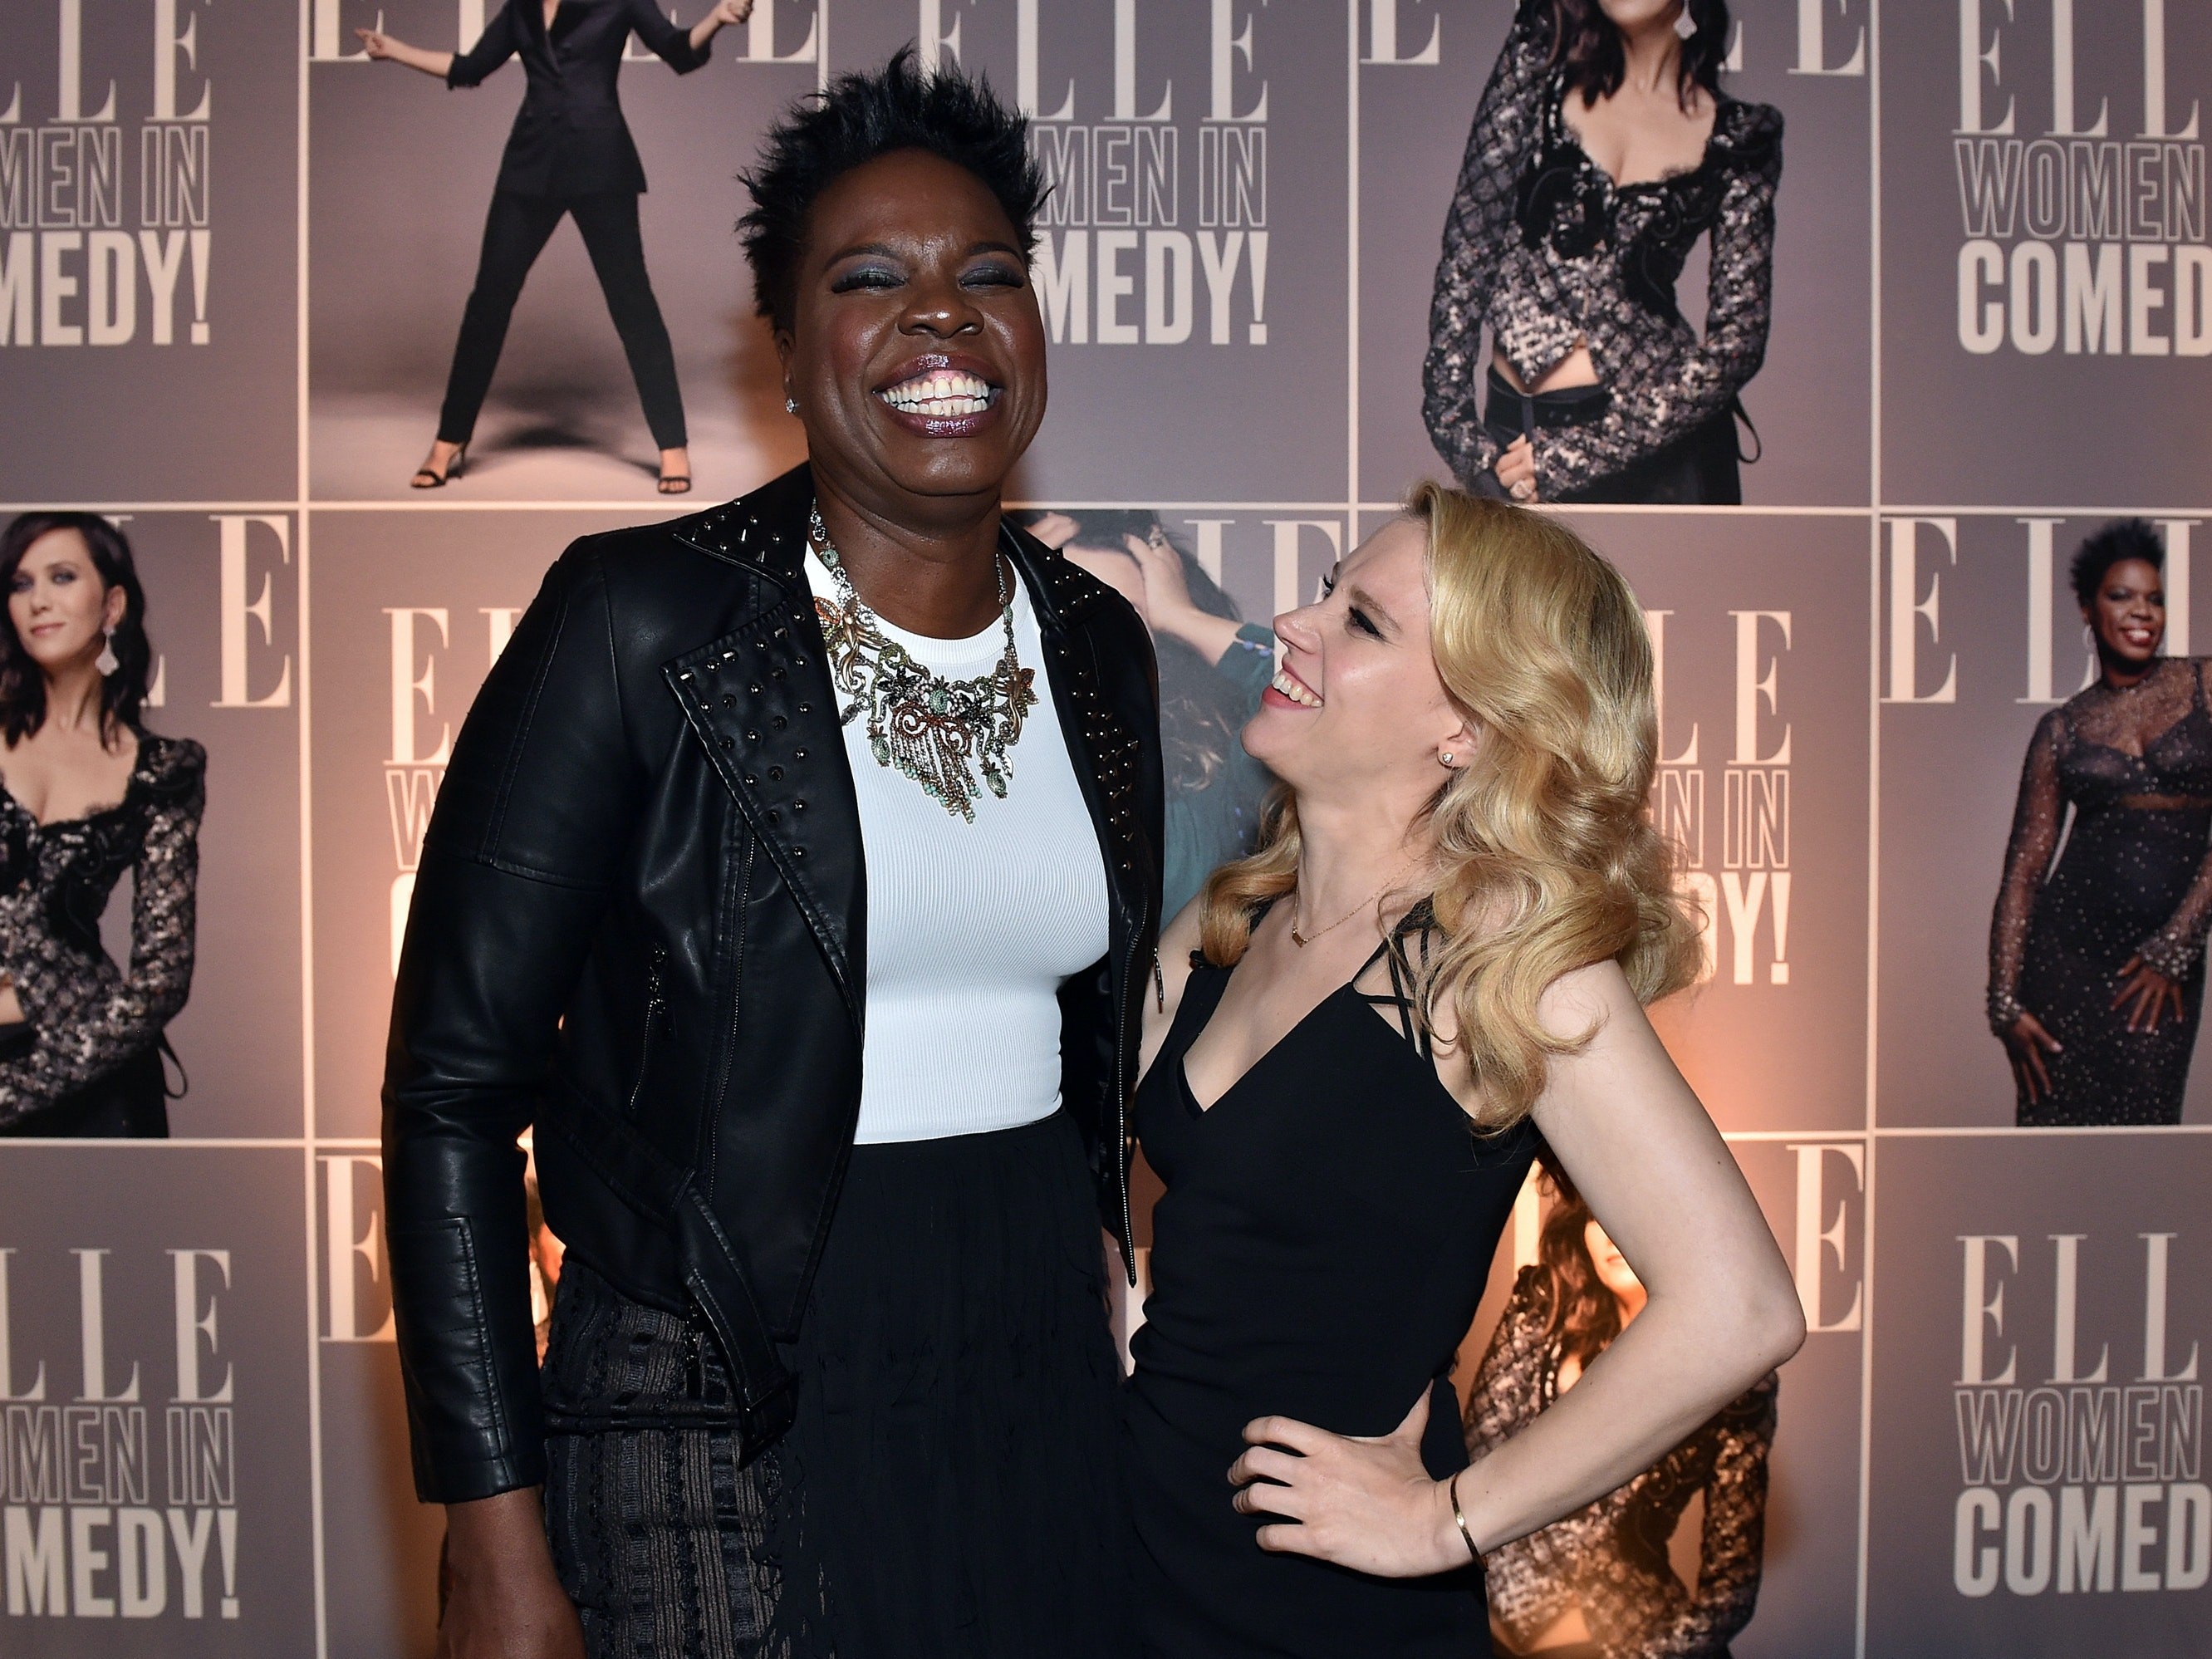 WEST HOLLYWOOD, CA - JUNE 07:  Actors Leslie Jones (L) and Kate McKinnon attend ELLE Women In Comedy event hosted by ELLE Editor-in-Chief Robbie Myers and Leslie Jones, Melissa McCarthy, Kate McKinnon and Kristen Wiig on June 7, 2016 at Hyde Sunset in Los Angeles, California; presented by Secret Deodorant and emceed by Jane Lynch with stand-up performances by Michelle Buteau, Nikki Glaser, Iliza Shlesinger, and Ali Wong.  (Photo by Mike Windle/Getty Images for ELLE)